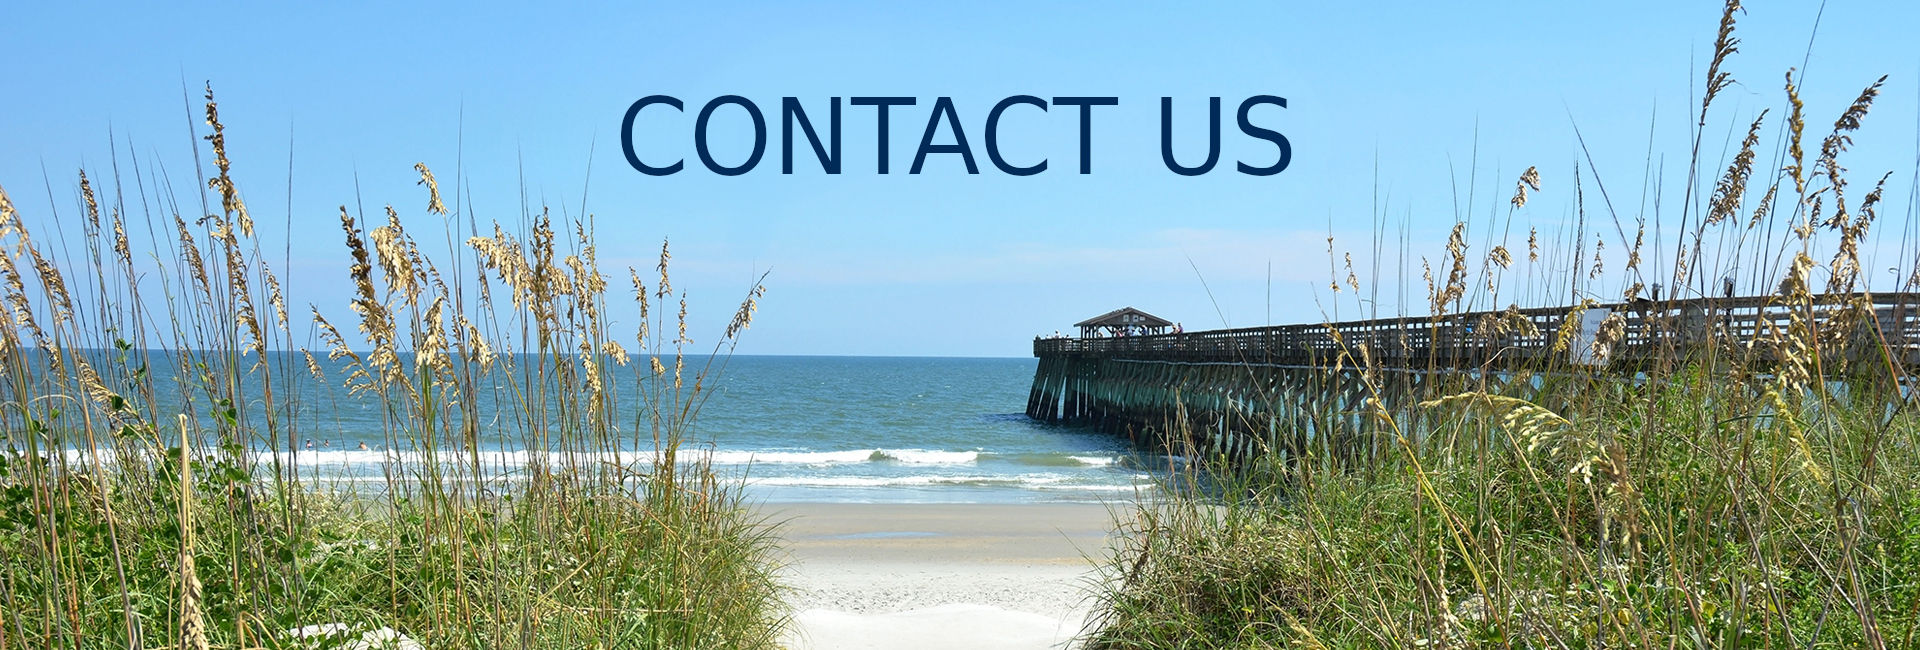 contact-us-1920x650